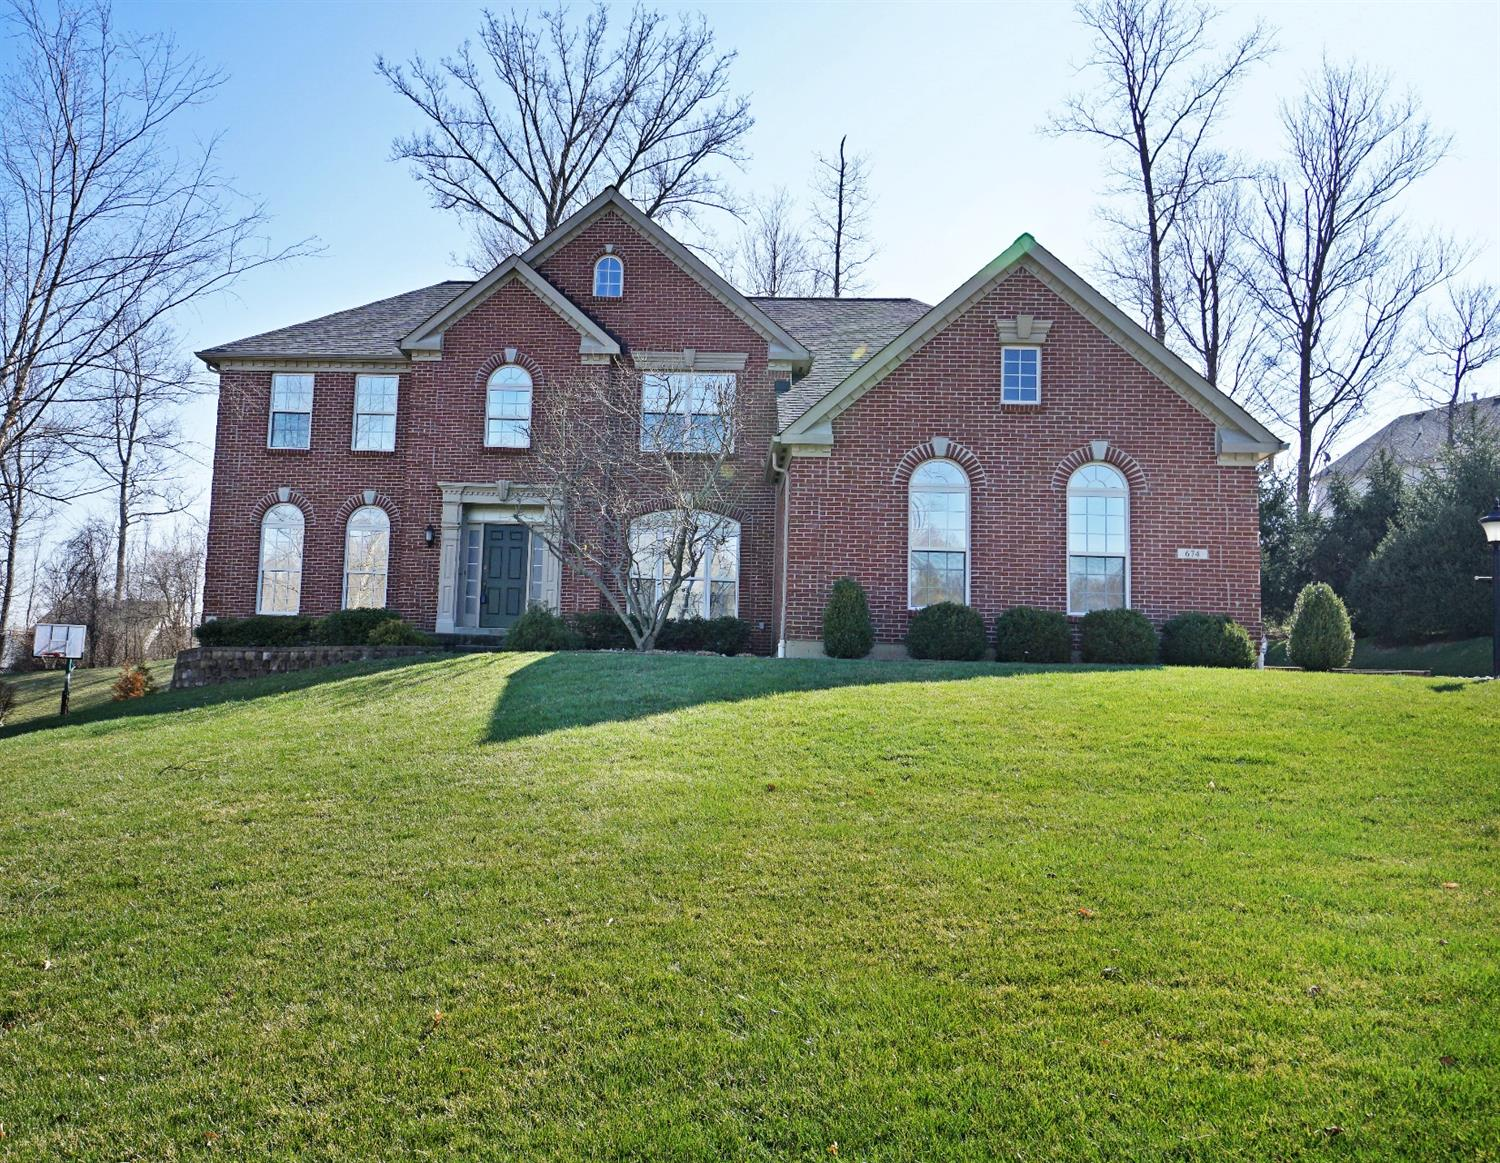 674 Kennecot Dr Union Twp. (Clermont), OH